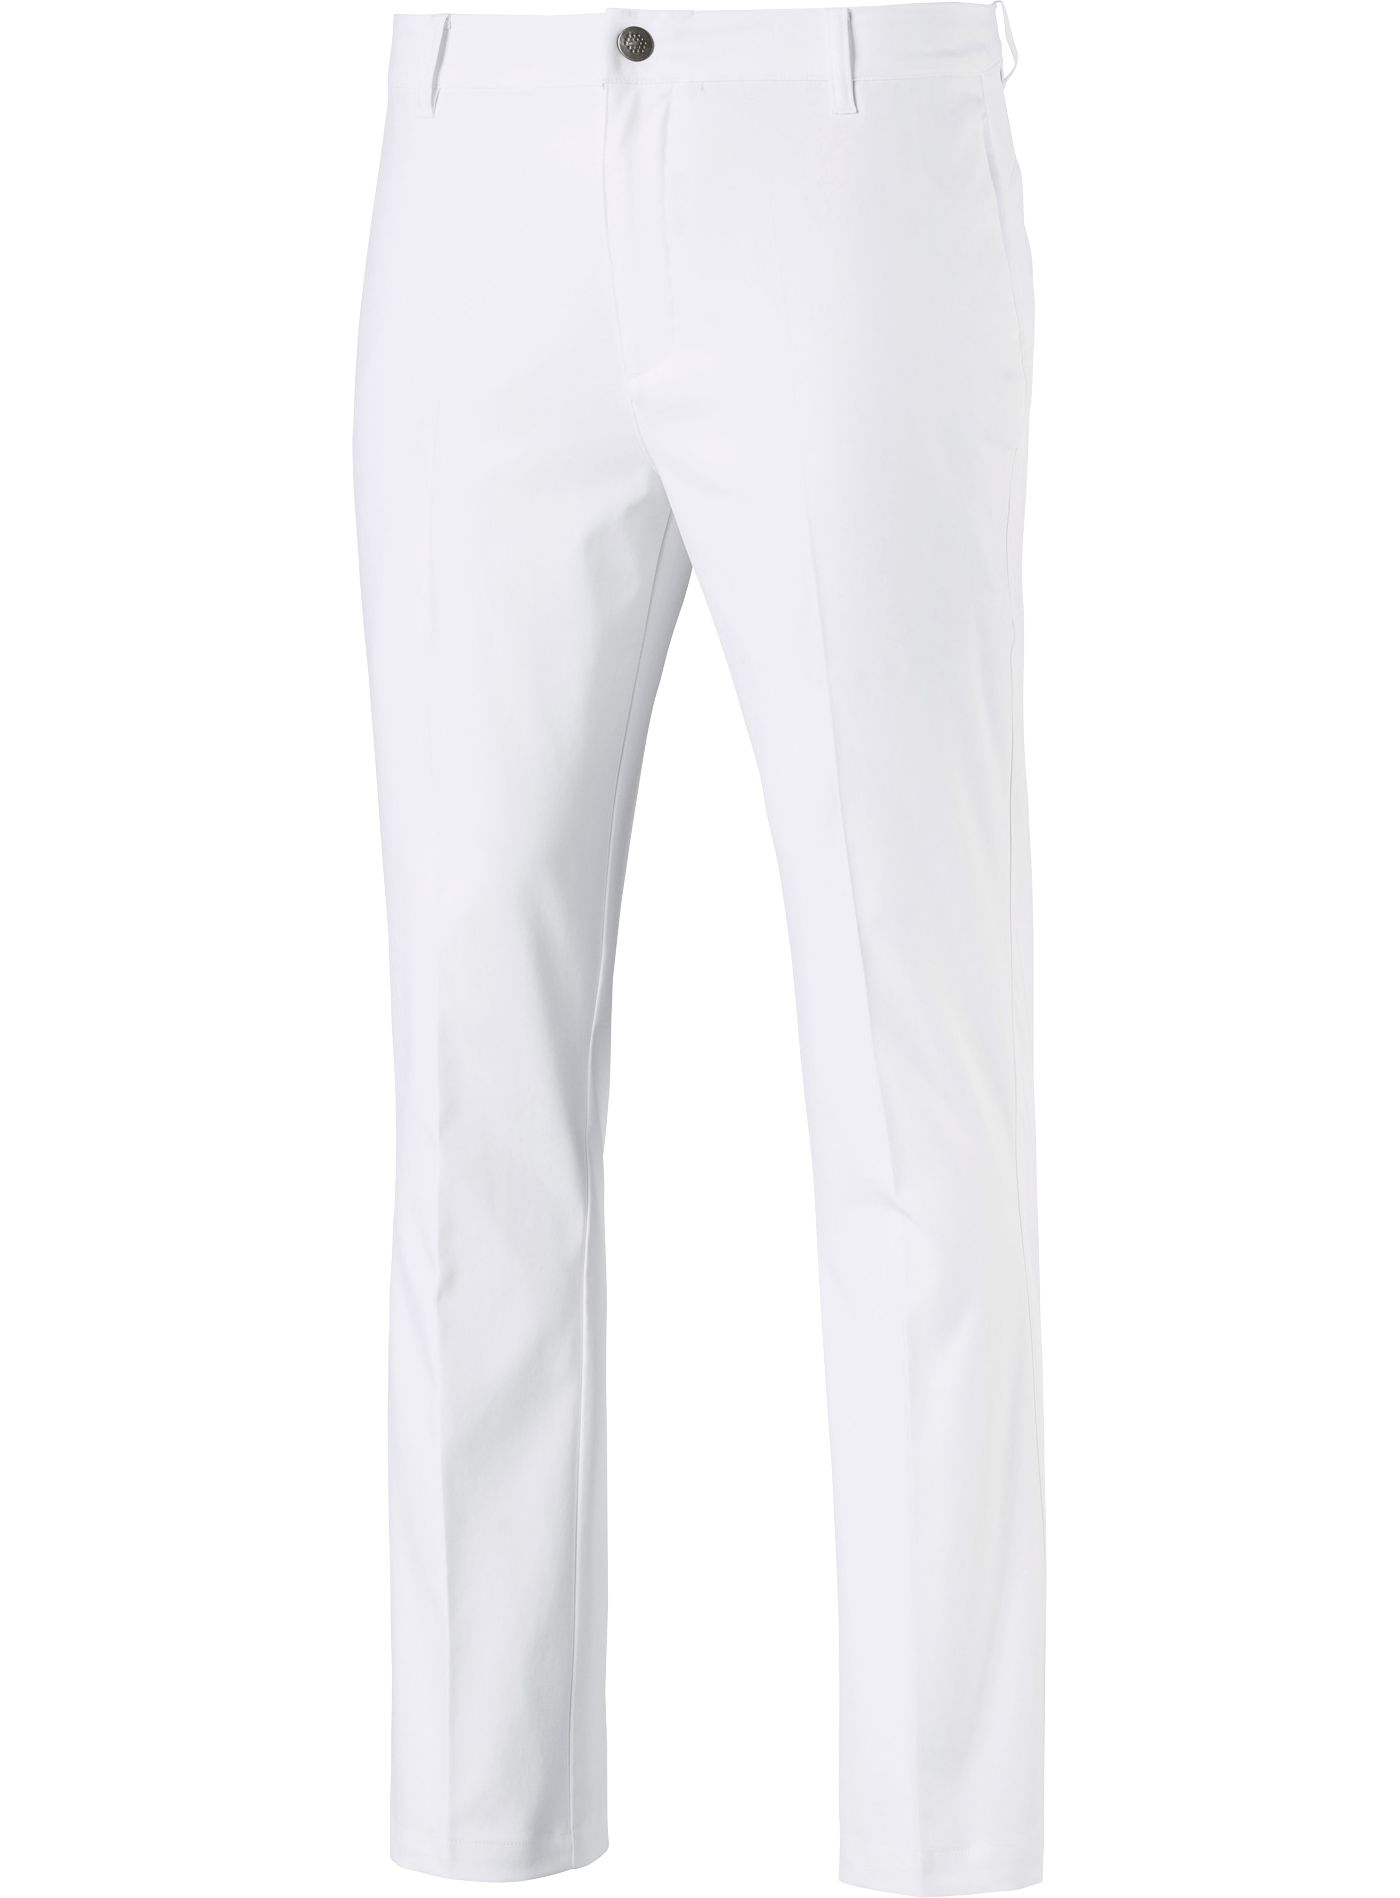 PUMA Men's Tailored Jackpot Golf Pants